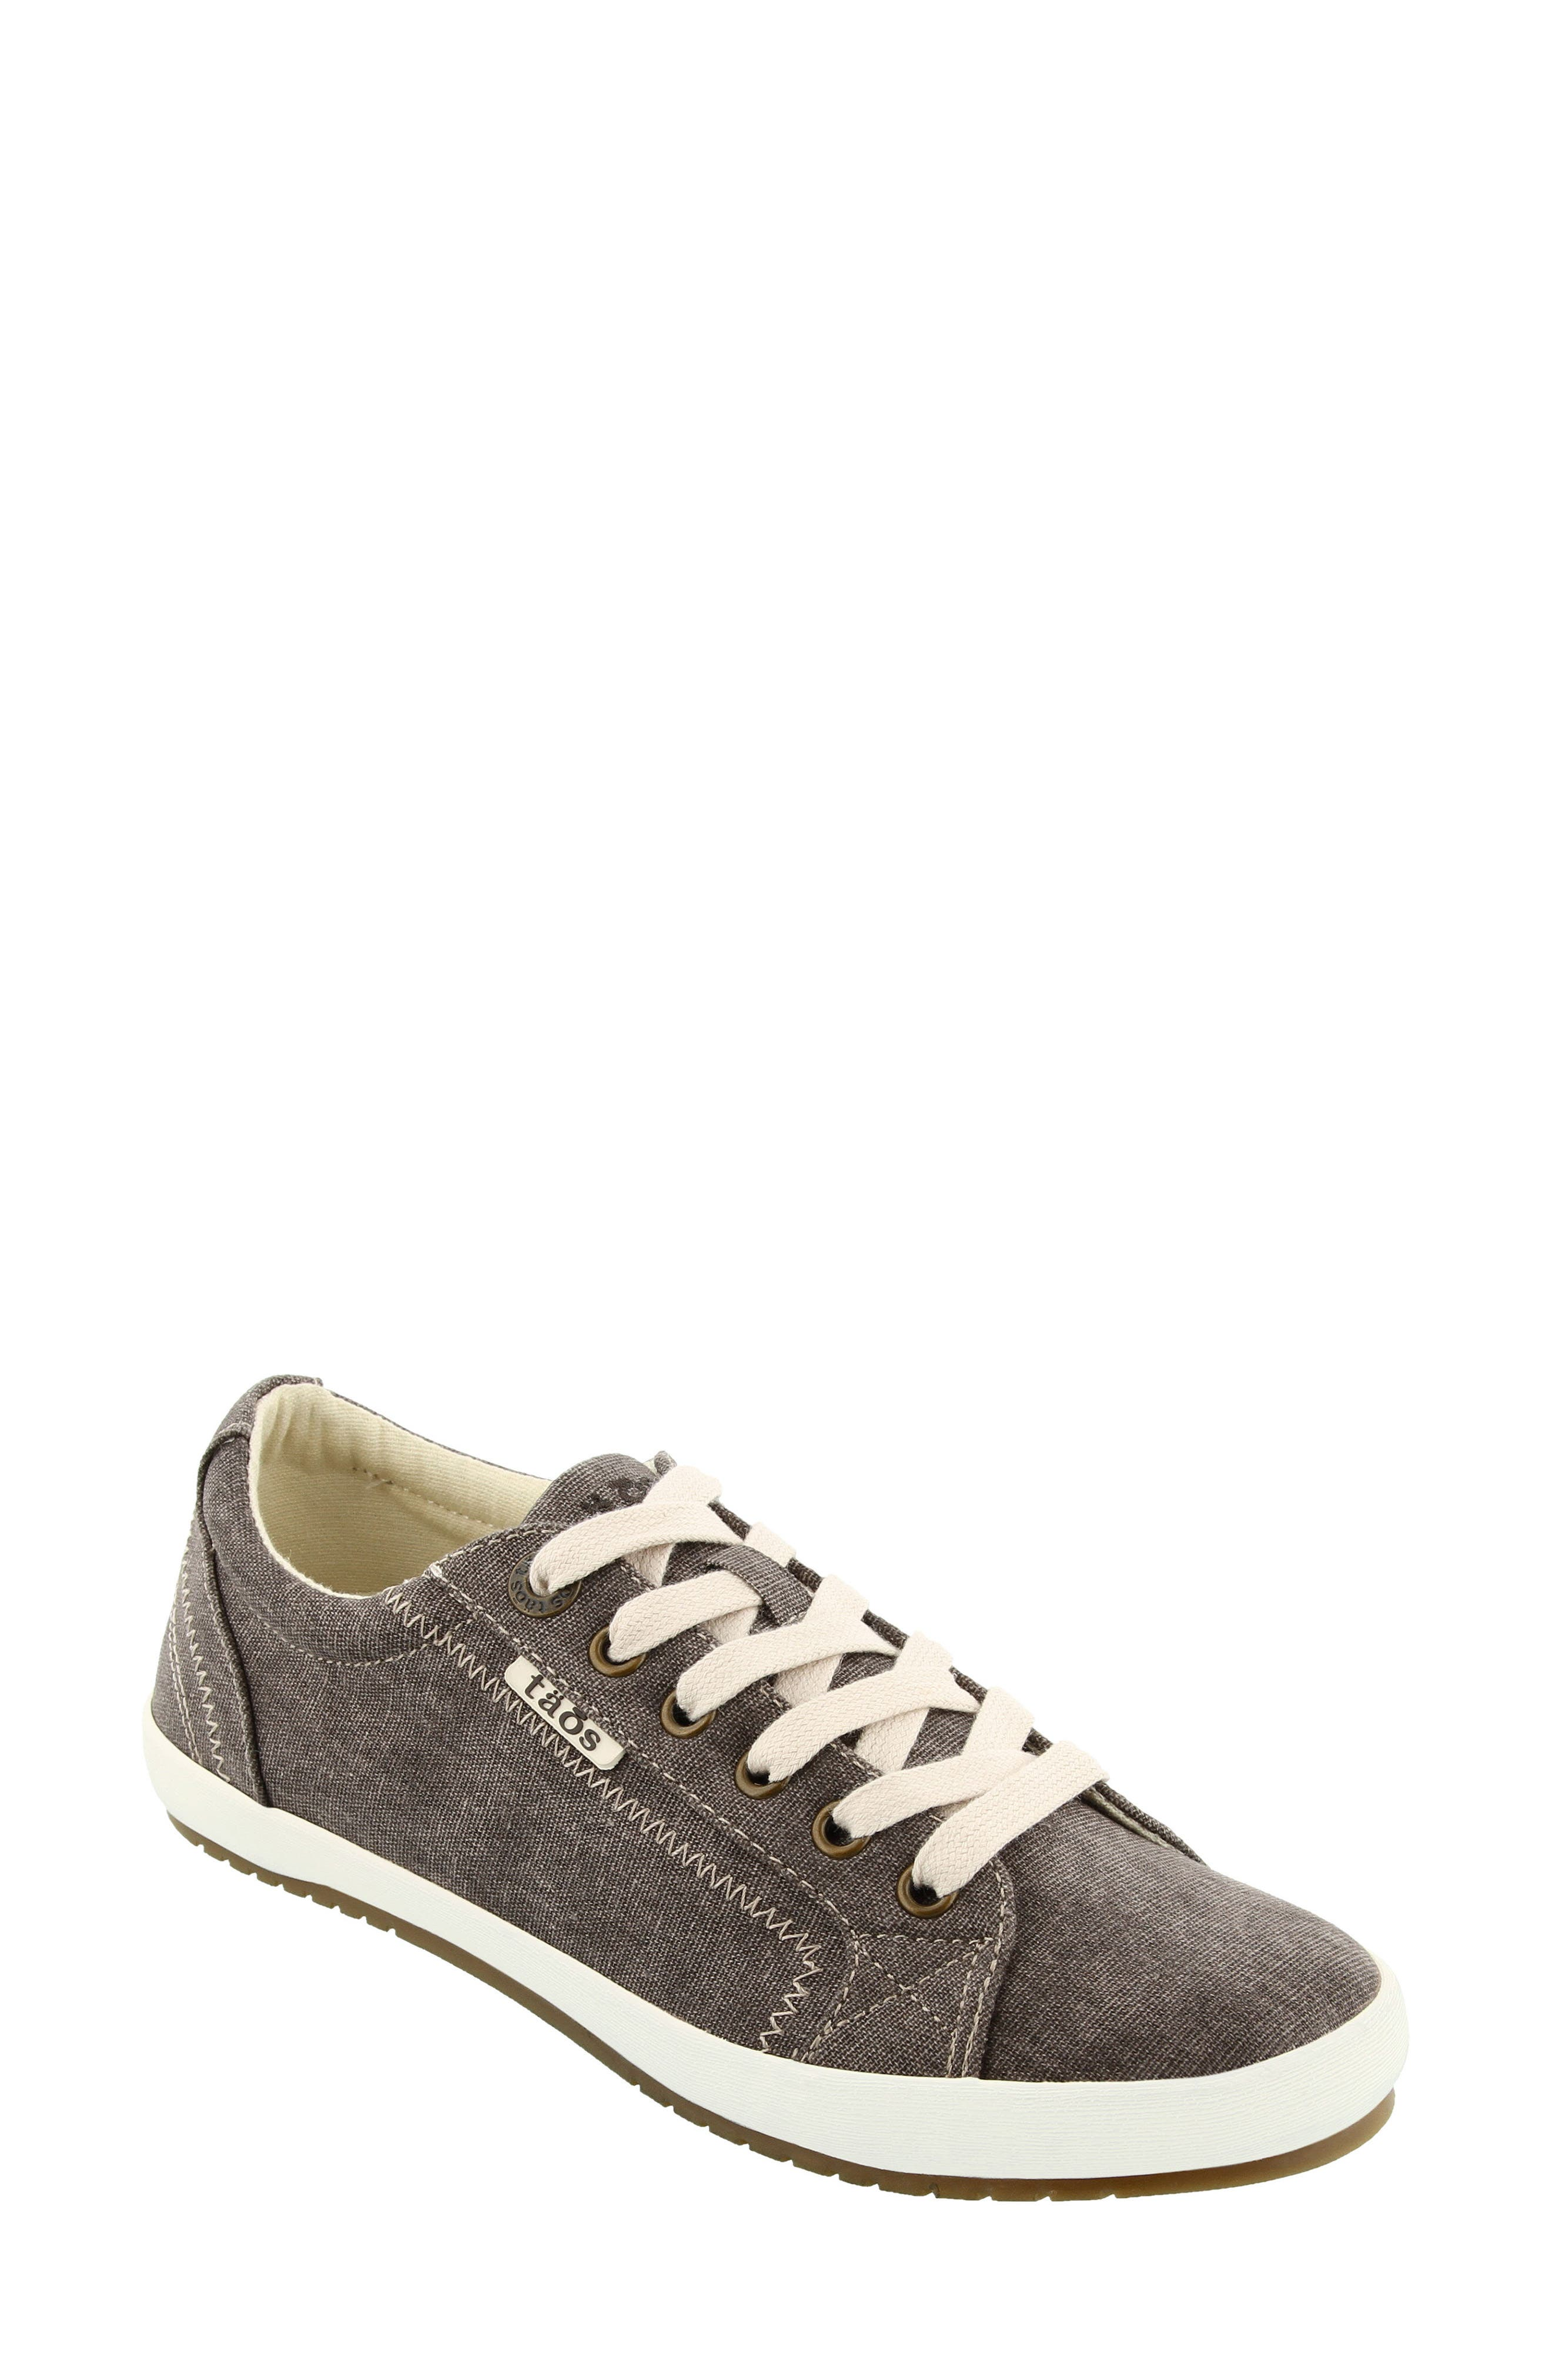 Taos 'star' Sneaker In Chocolate Washed Canvas